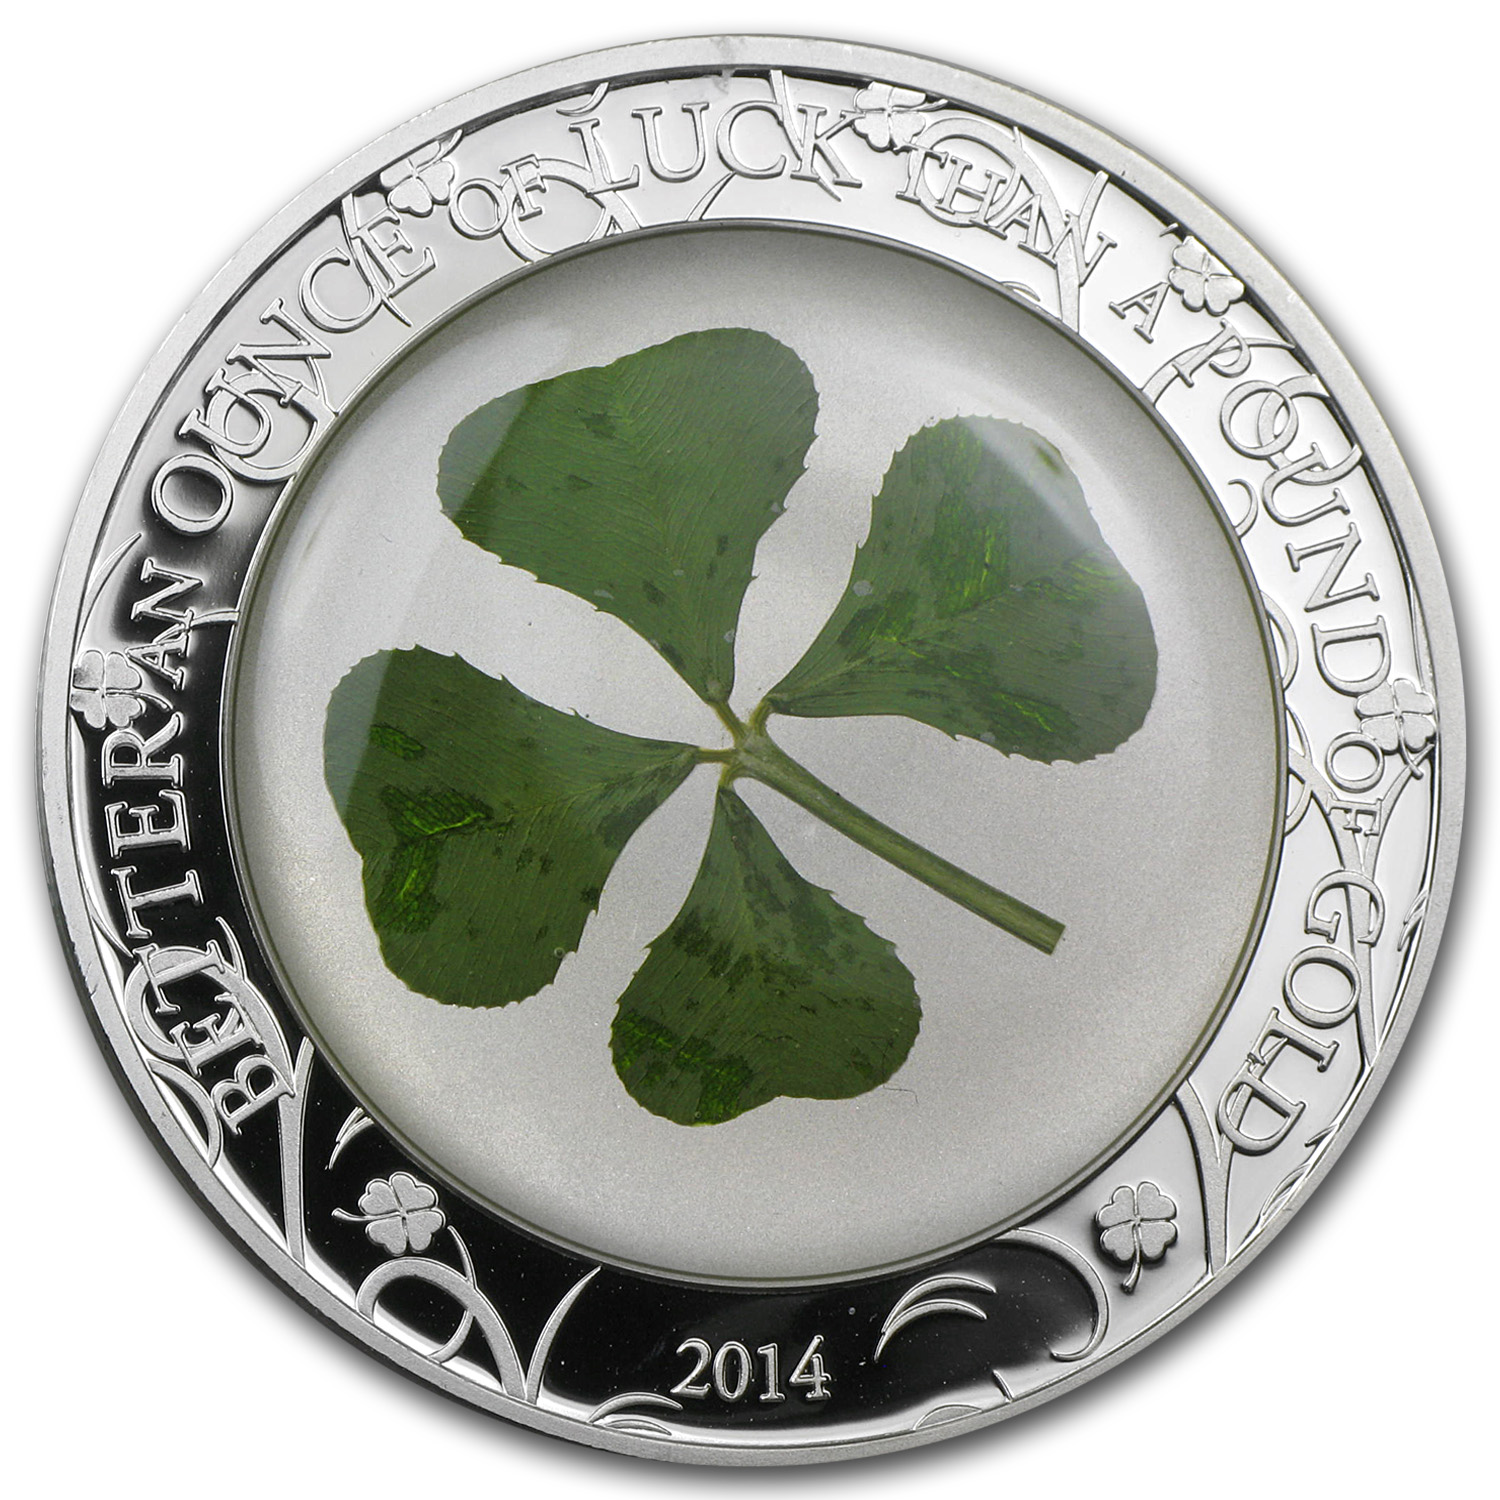 2014 Palau Proof Silver $5 Four-Leaf Clover Ounce of Luck